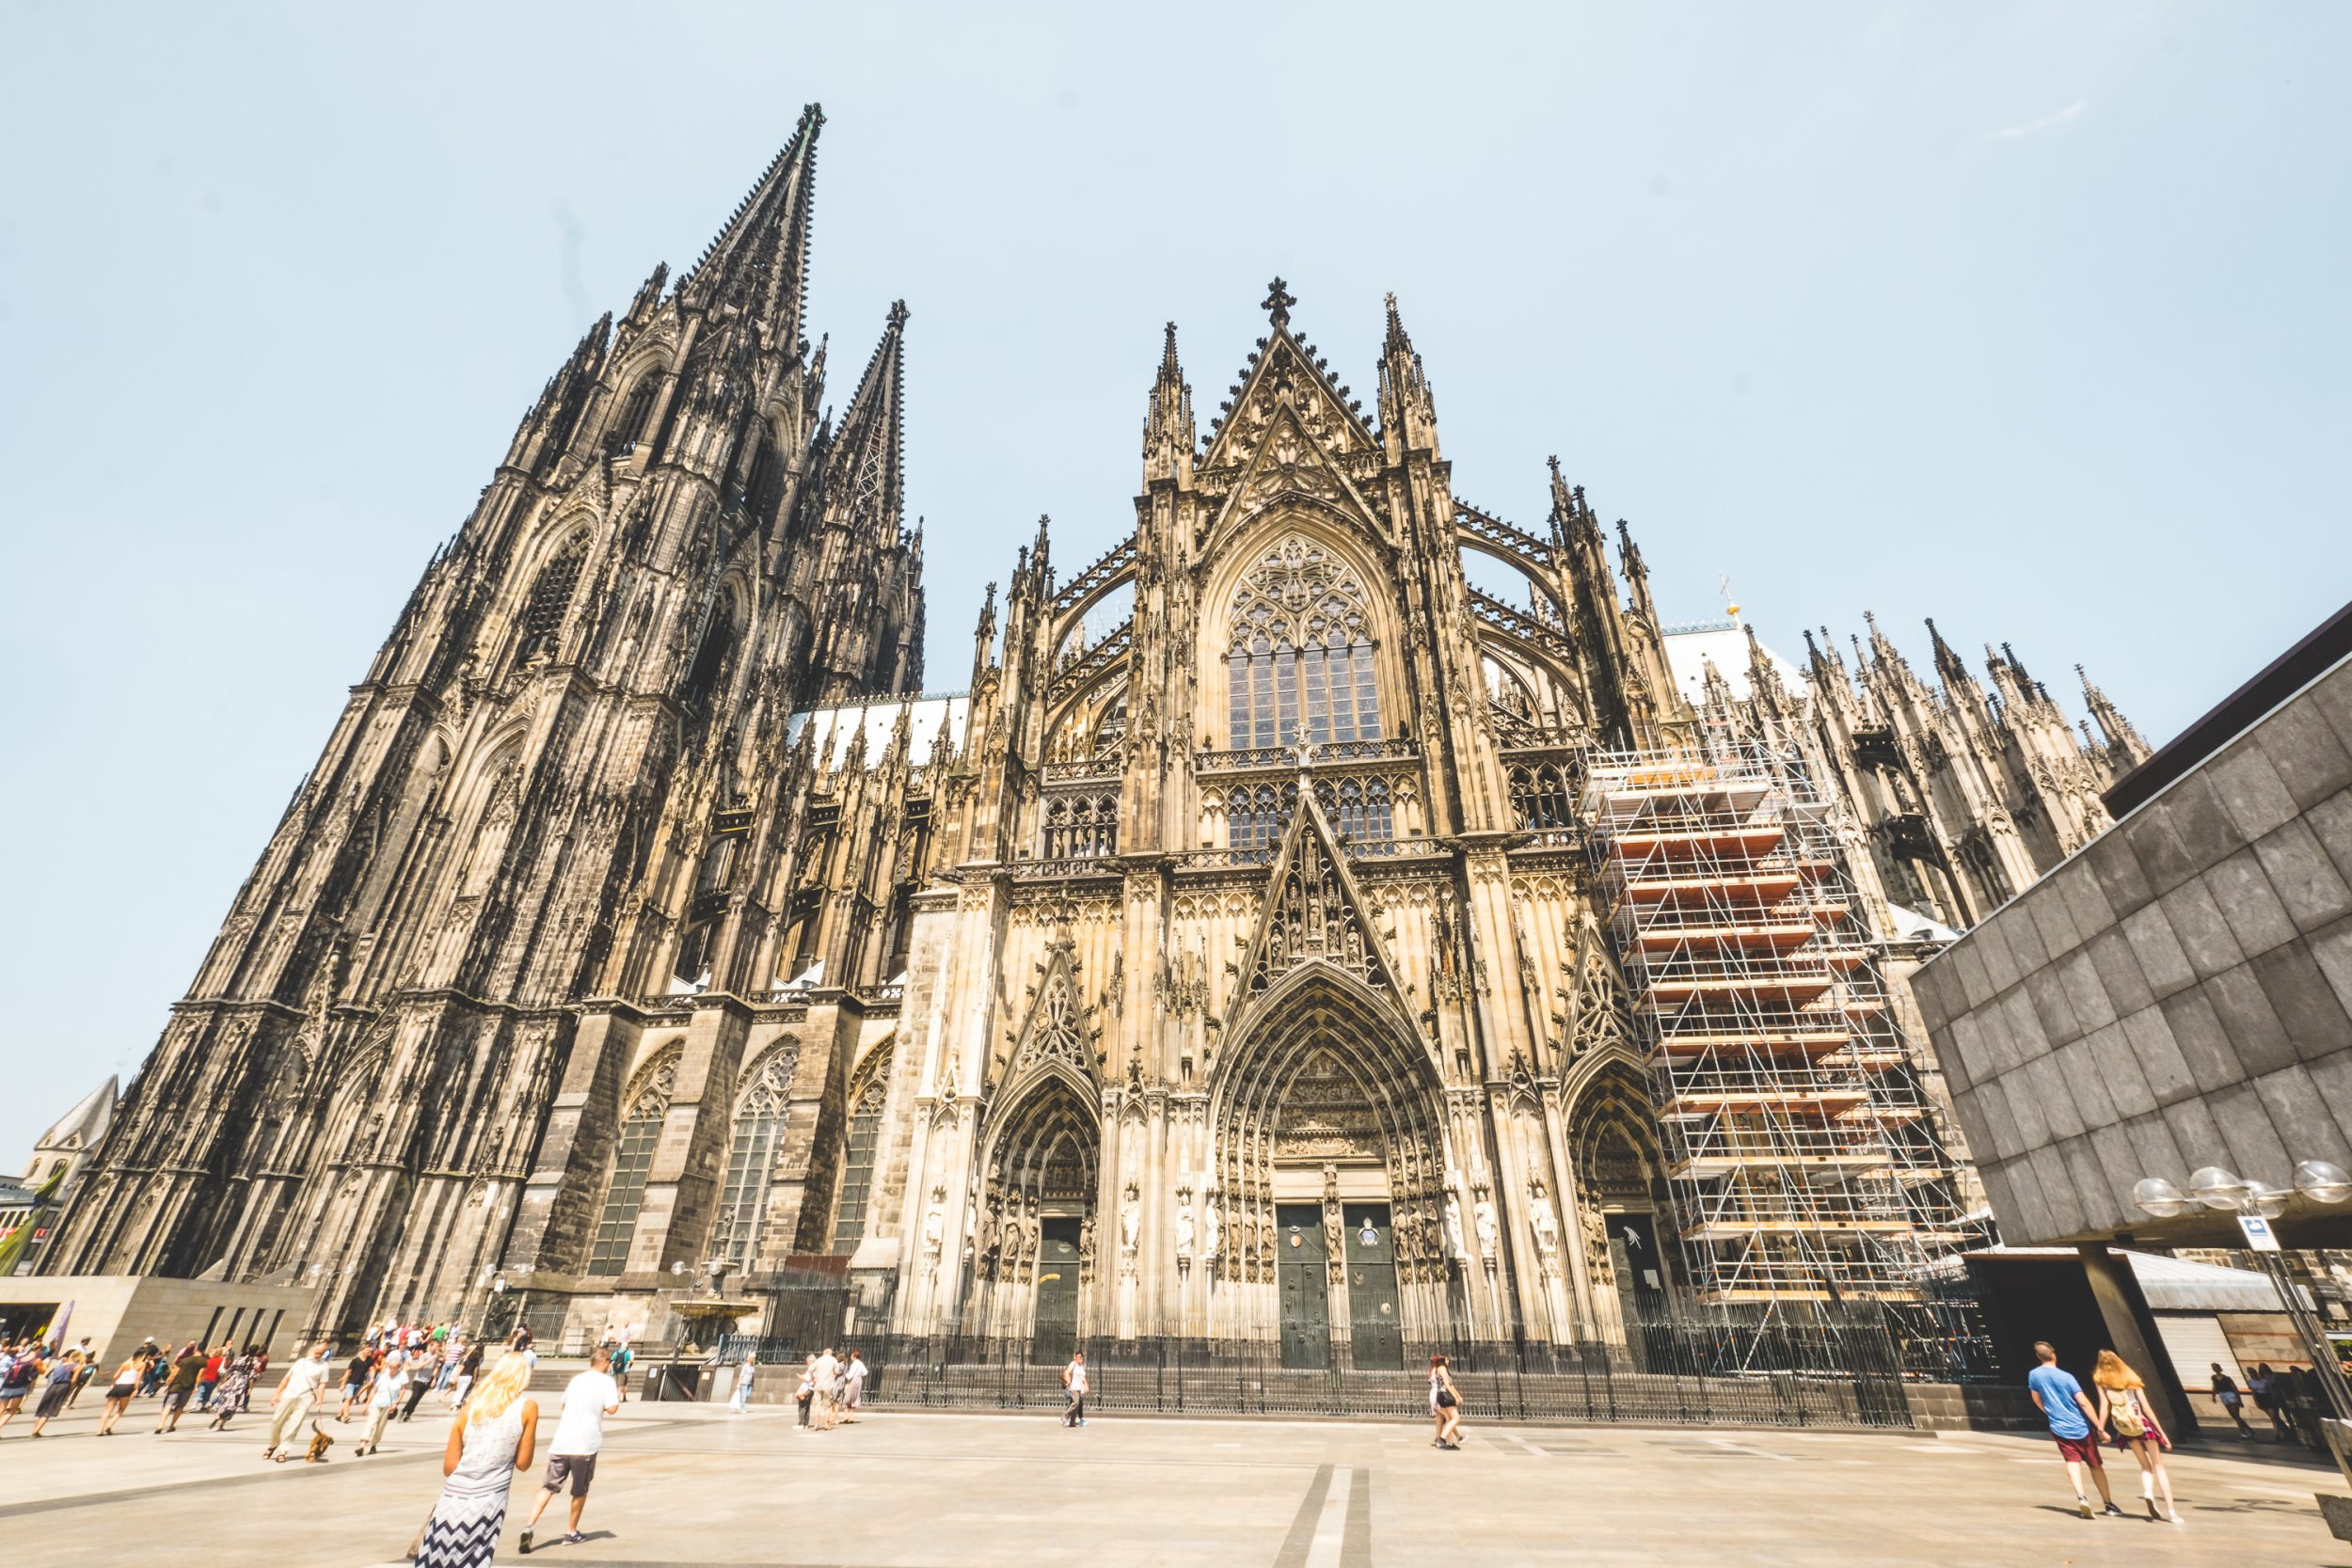 What to see in cologne Germany in 2 days - Things to do Cologne Cathedral